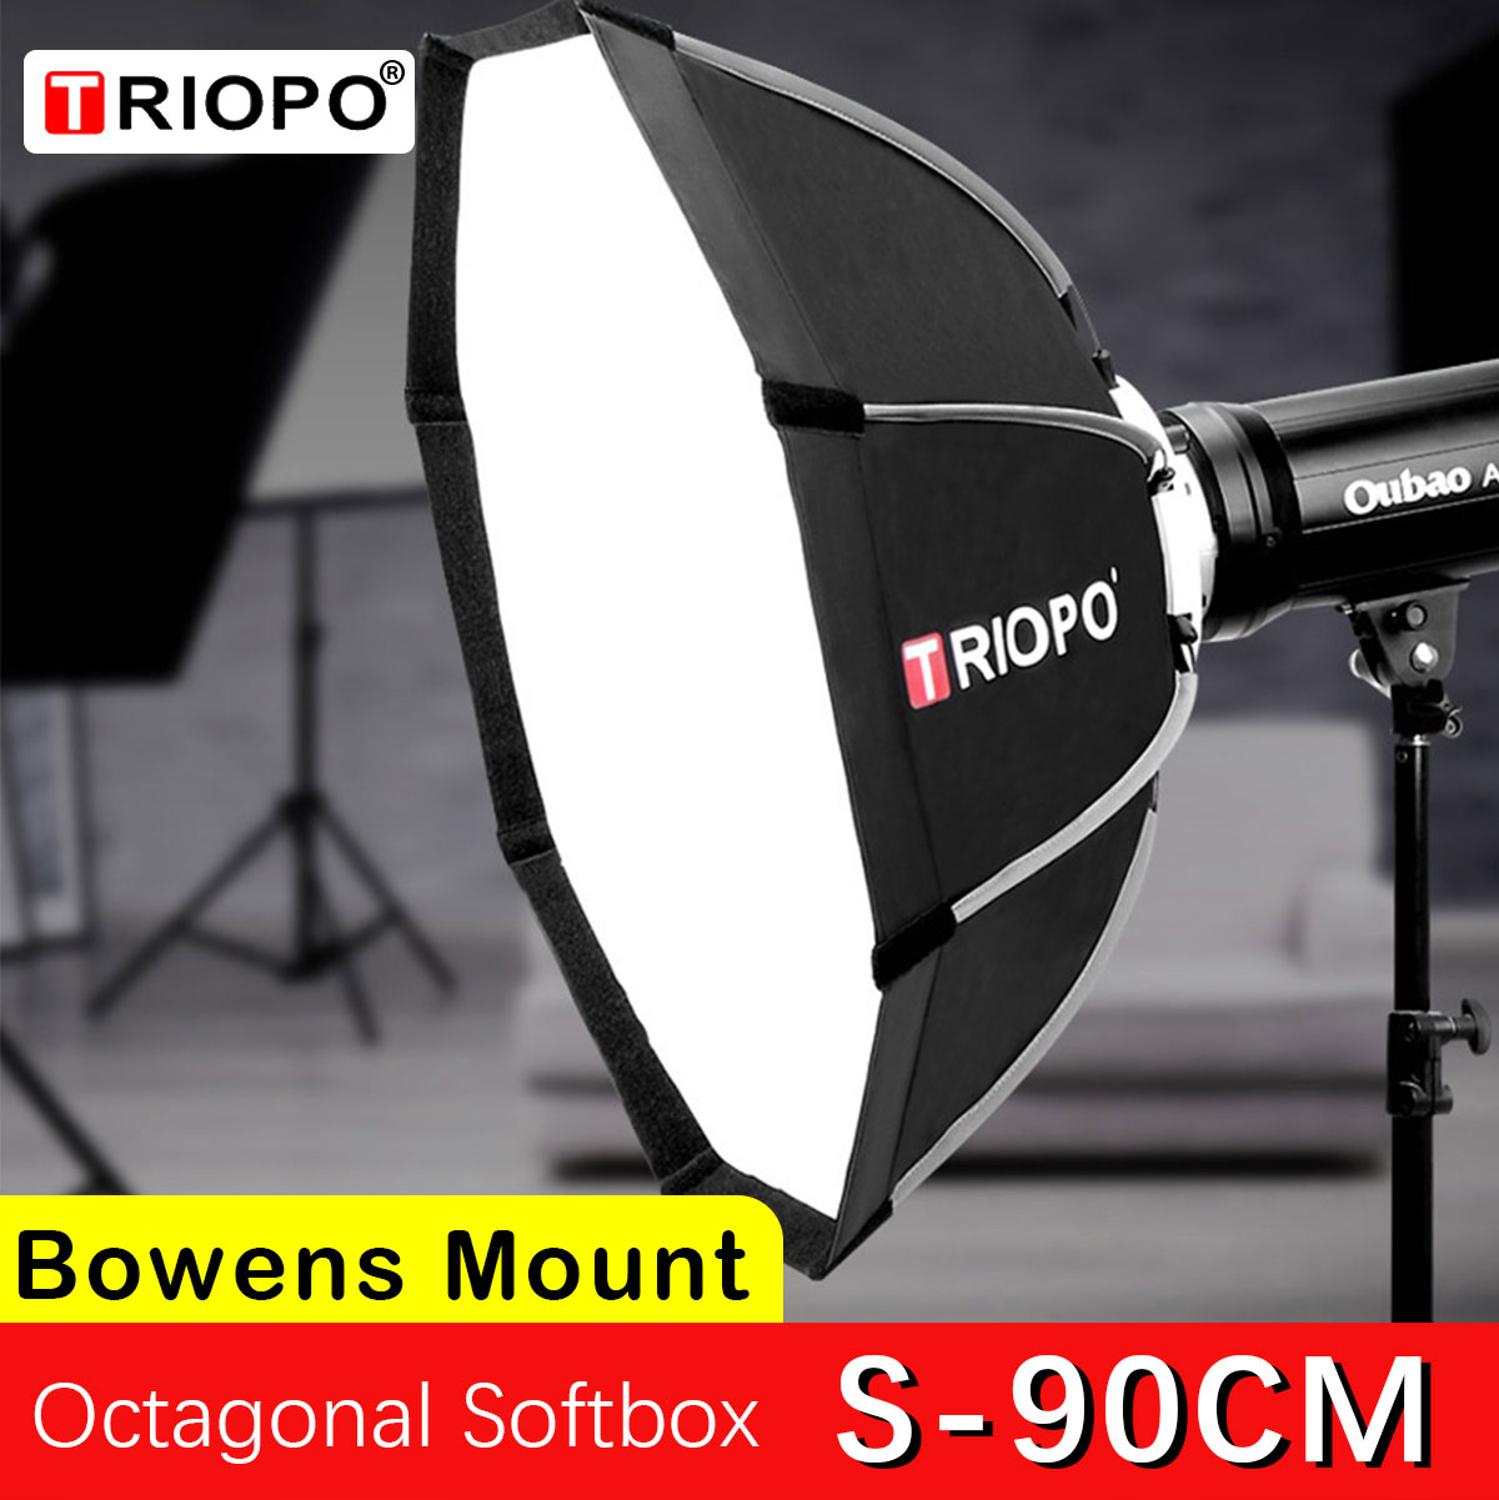 Triopo 90cm K90cm S90cm Photo Portabe Bowens Mount Octagon Umbrella Softbox + Honeycomb Outdoor Soft Box For GODOX Studio Strobe